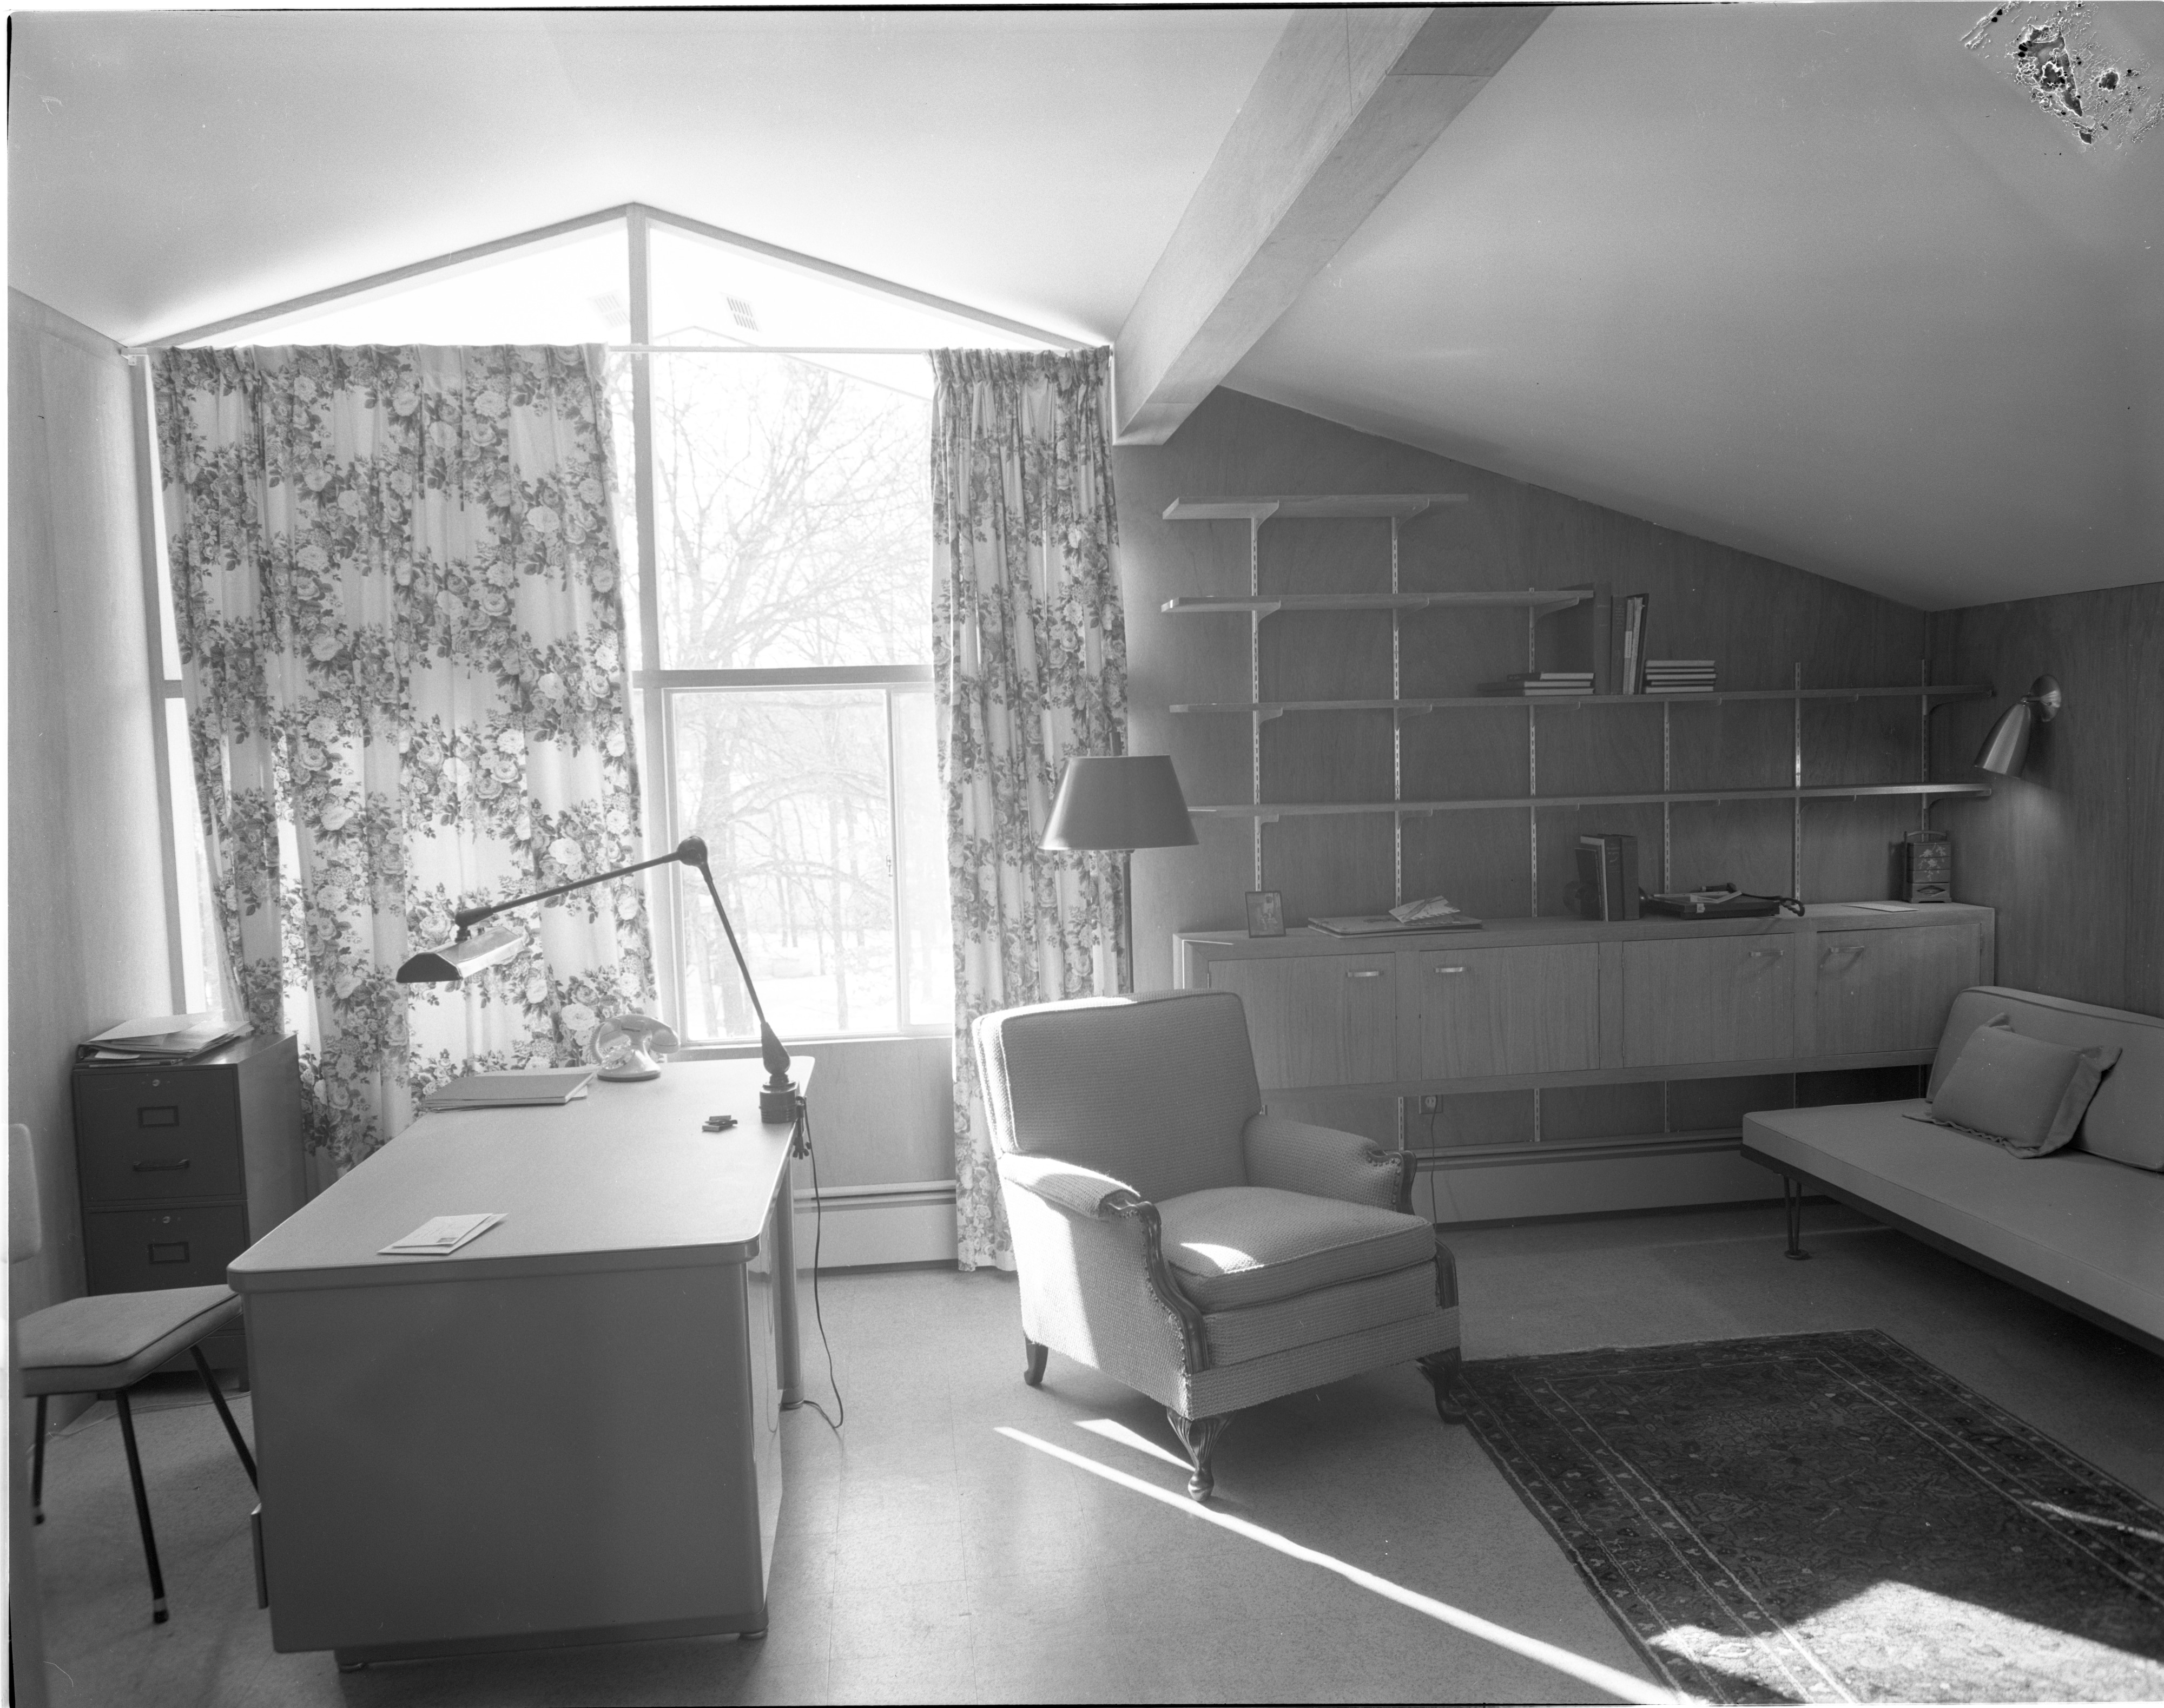 Combined Study & Guest Bedroom - 16 Heatheridge, January 1956 image